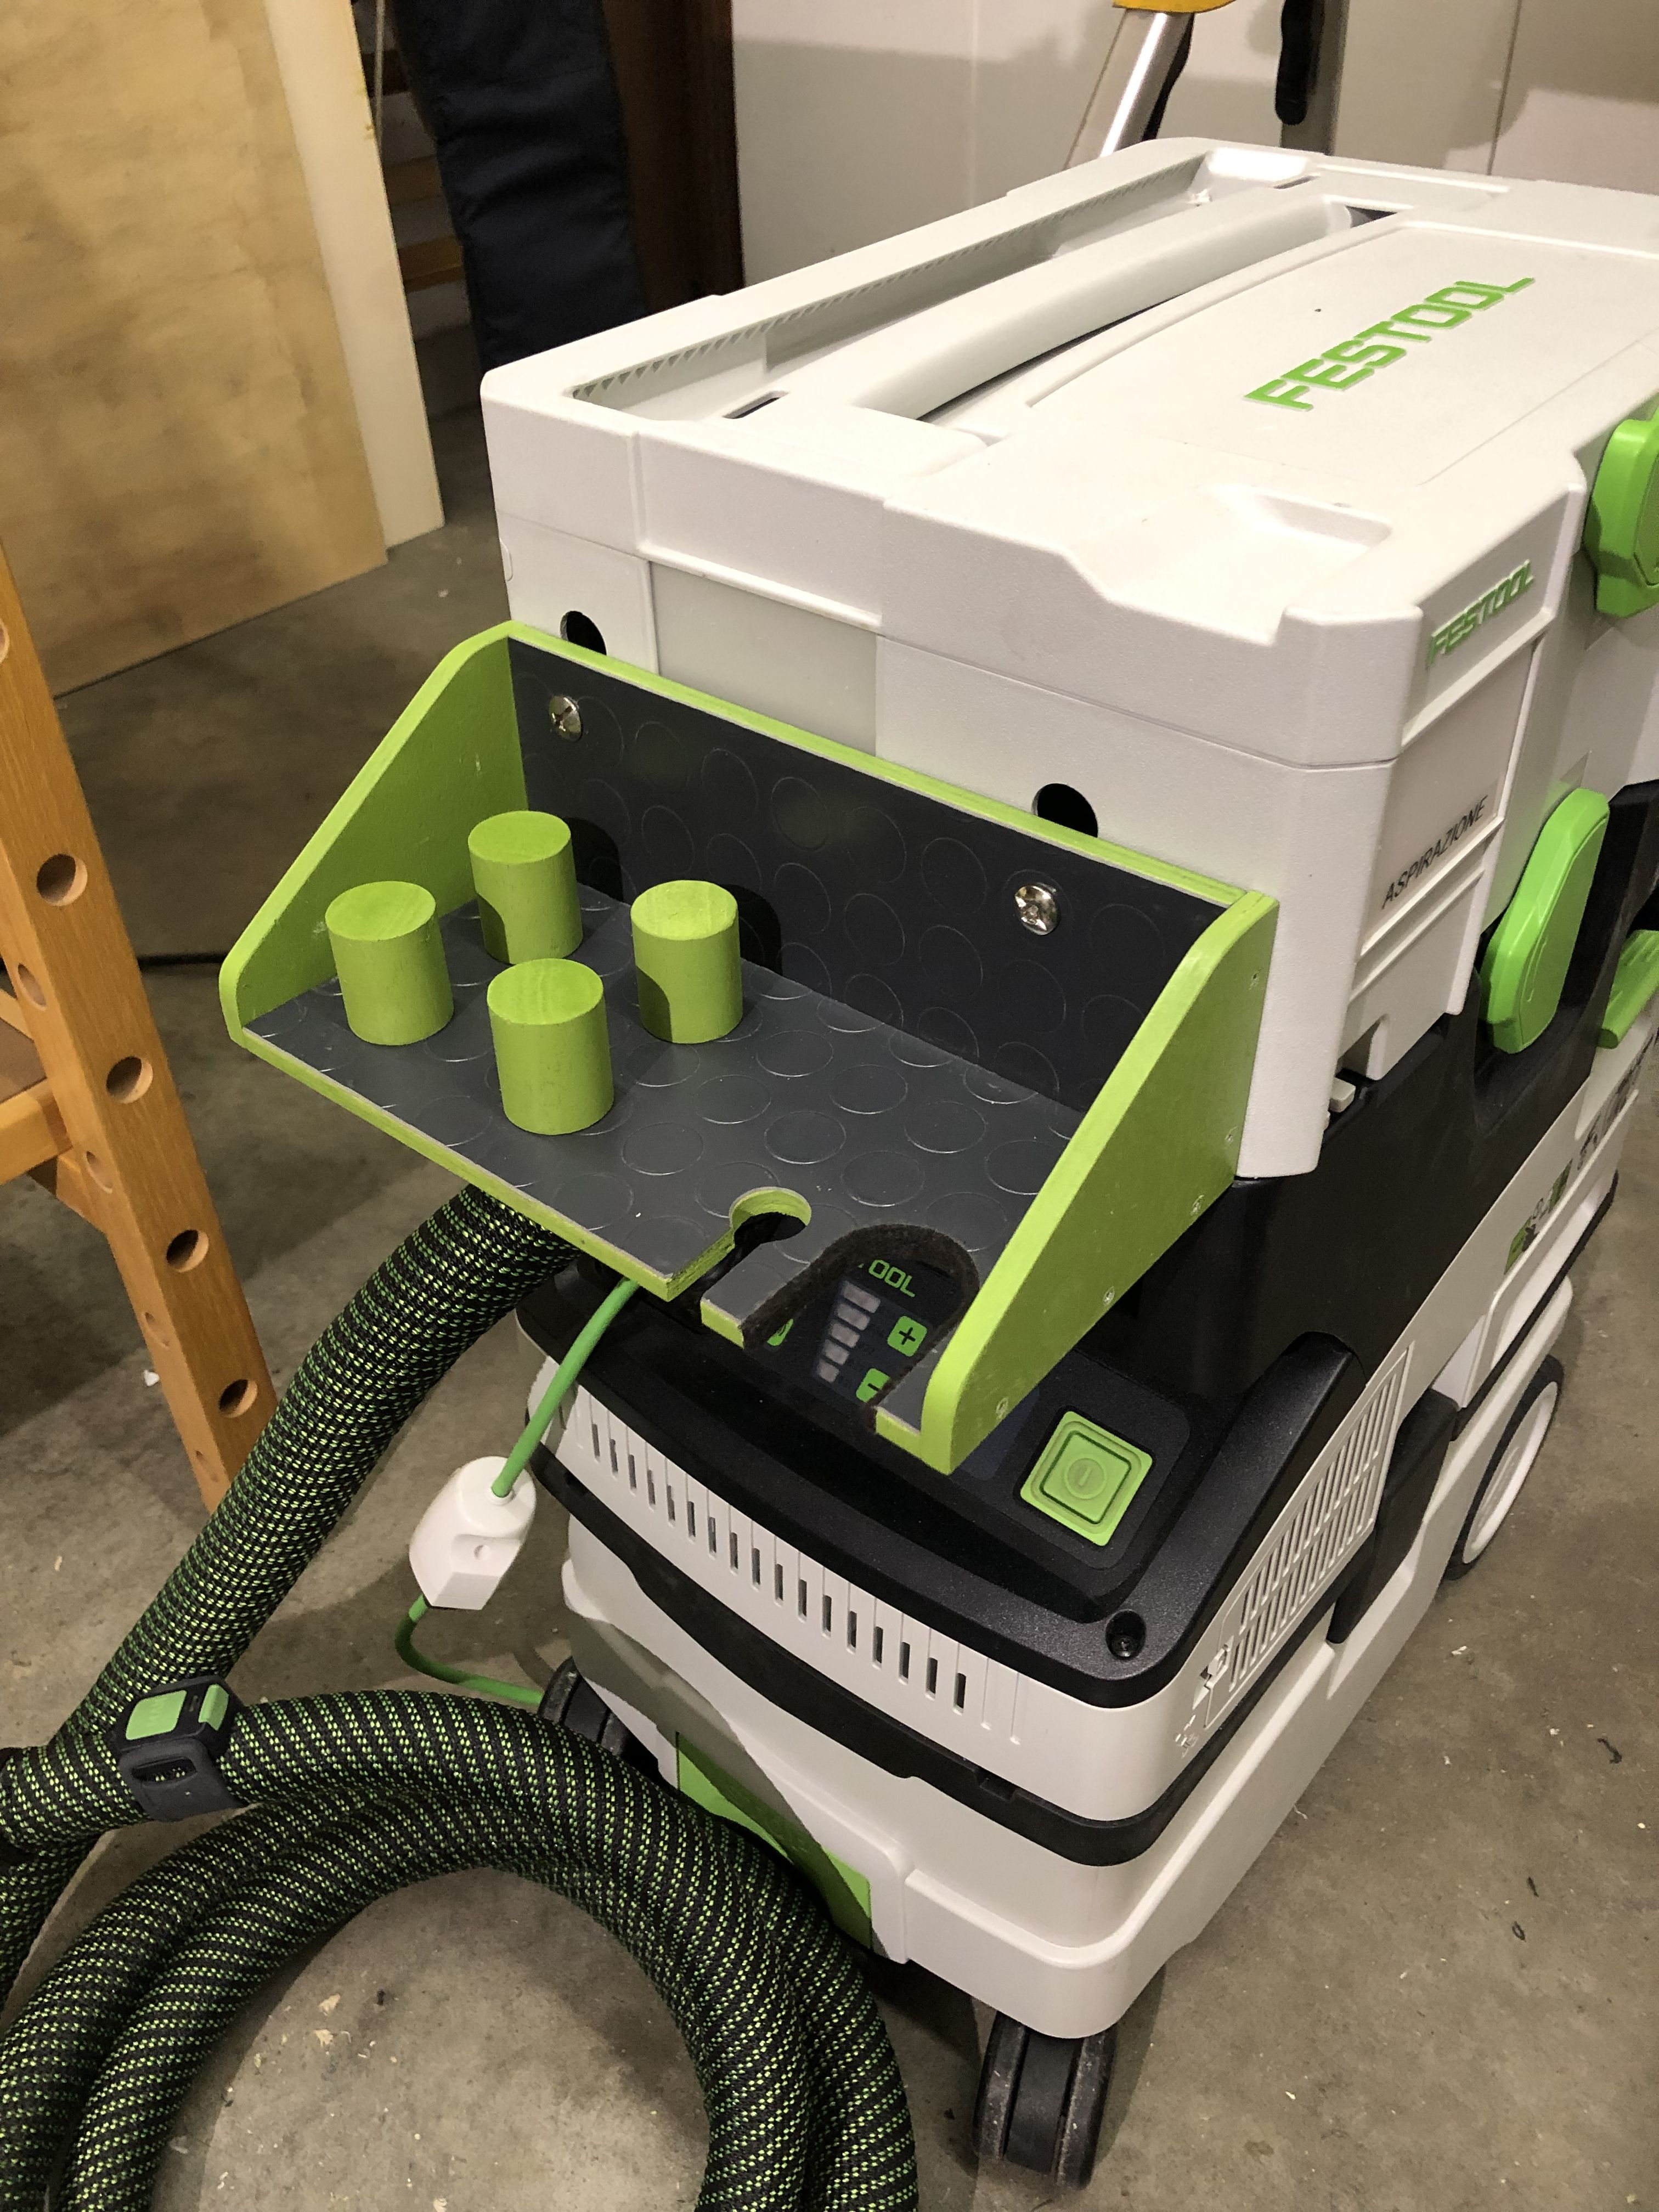 Pin By William Strahan On Systainer Habbit Festool Systainer Festool Wood Shop